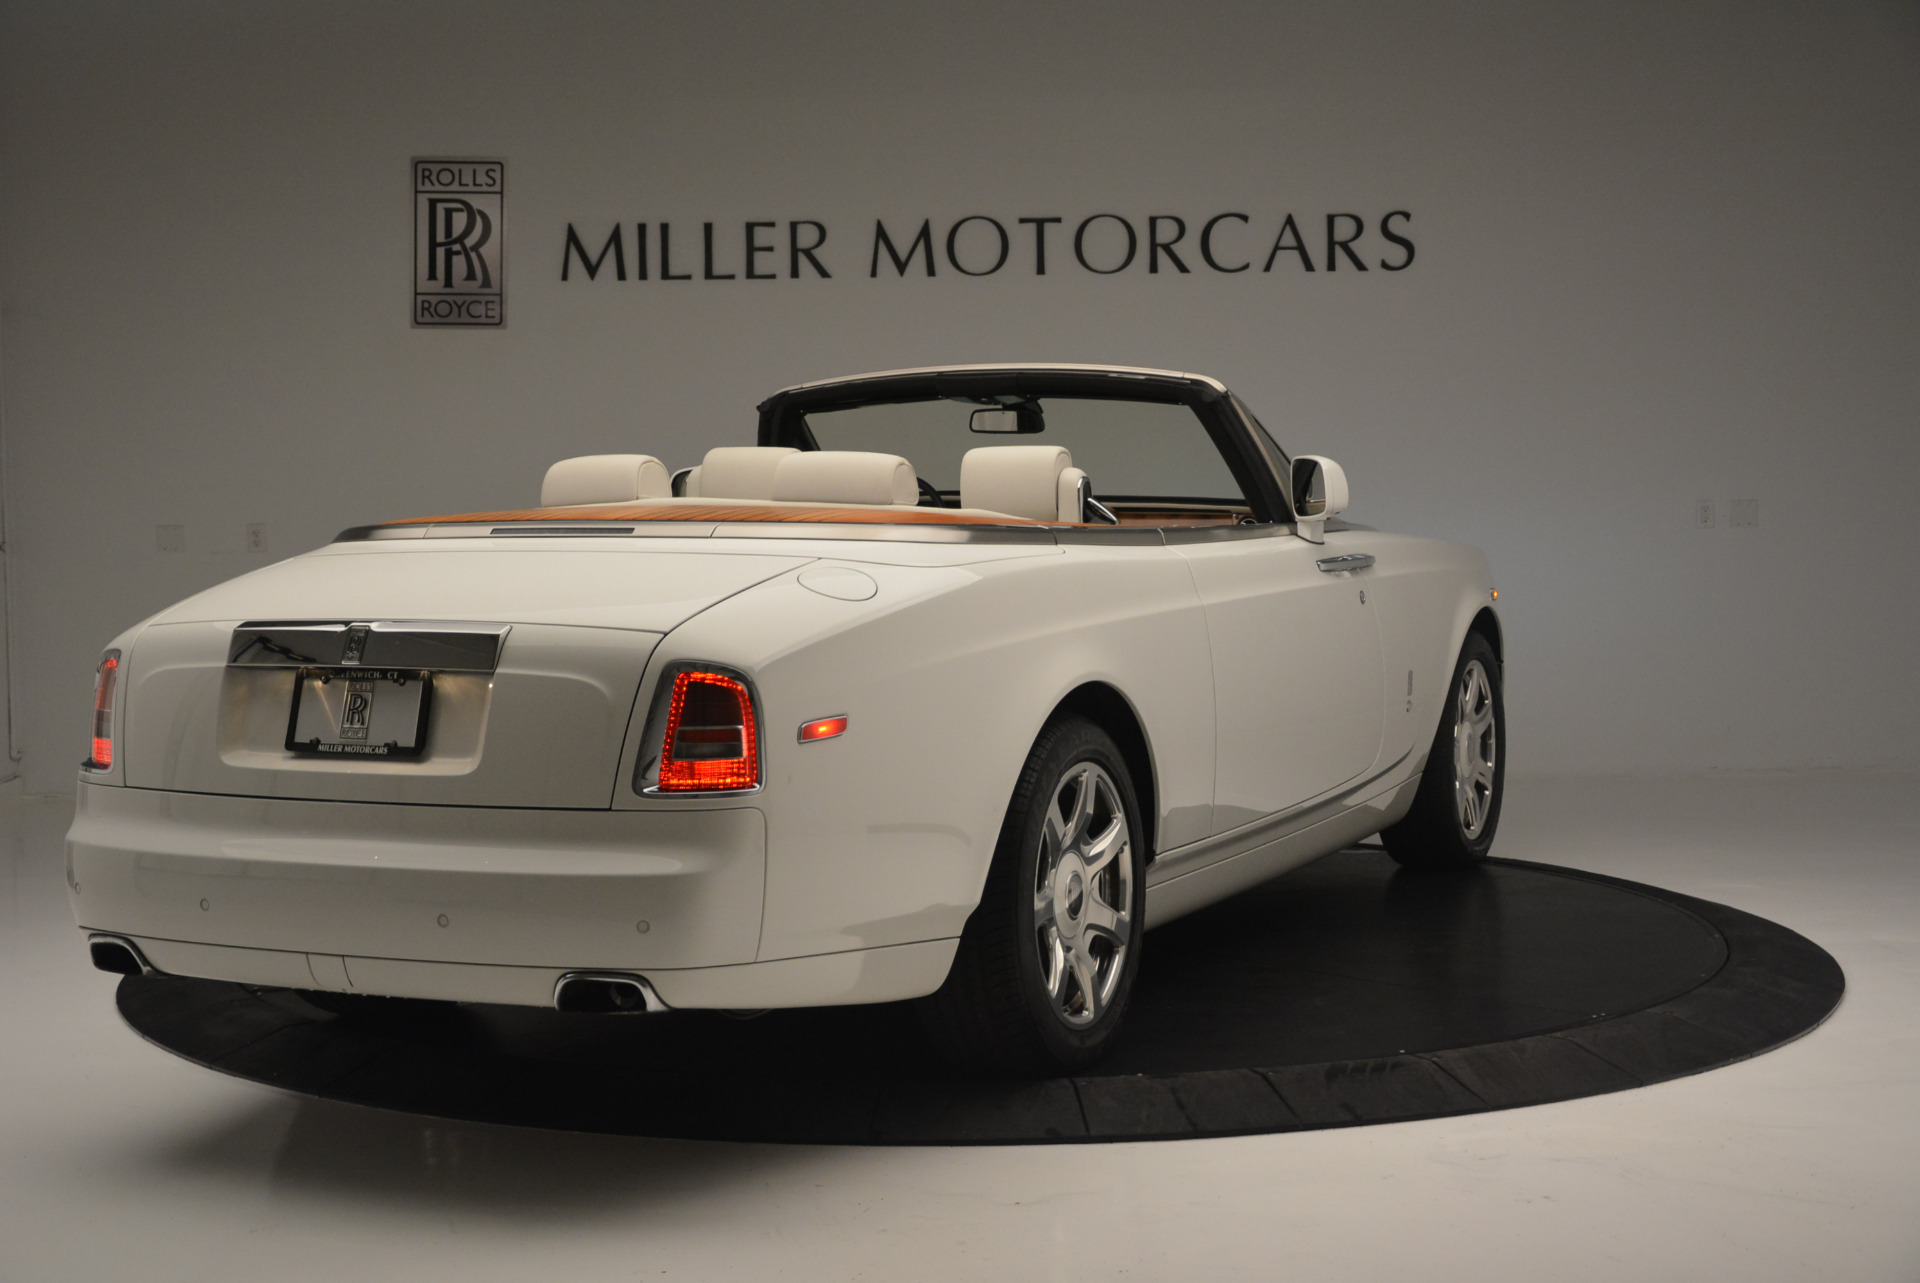 Used 2013 Rolls-Royce Phantom Drophead Coupe  For Sale In Greenwich, CT 2444_p5